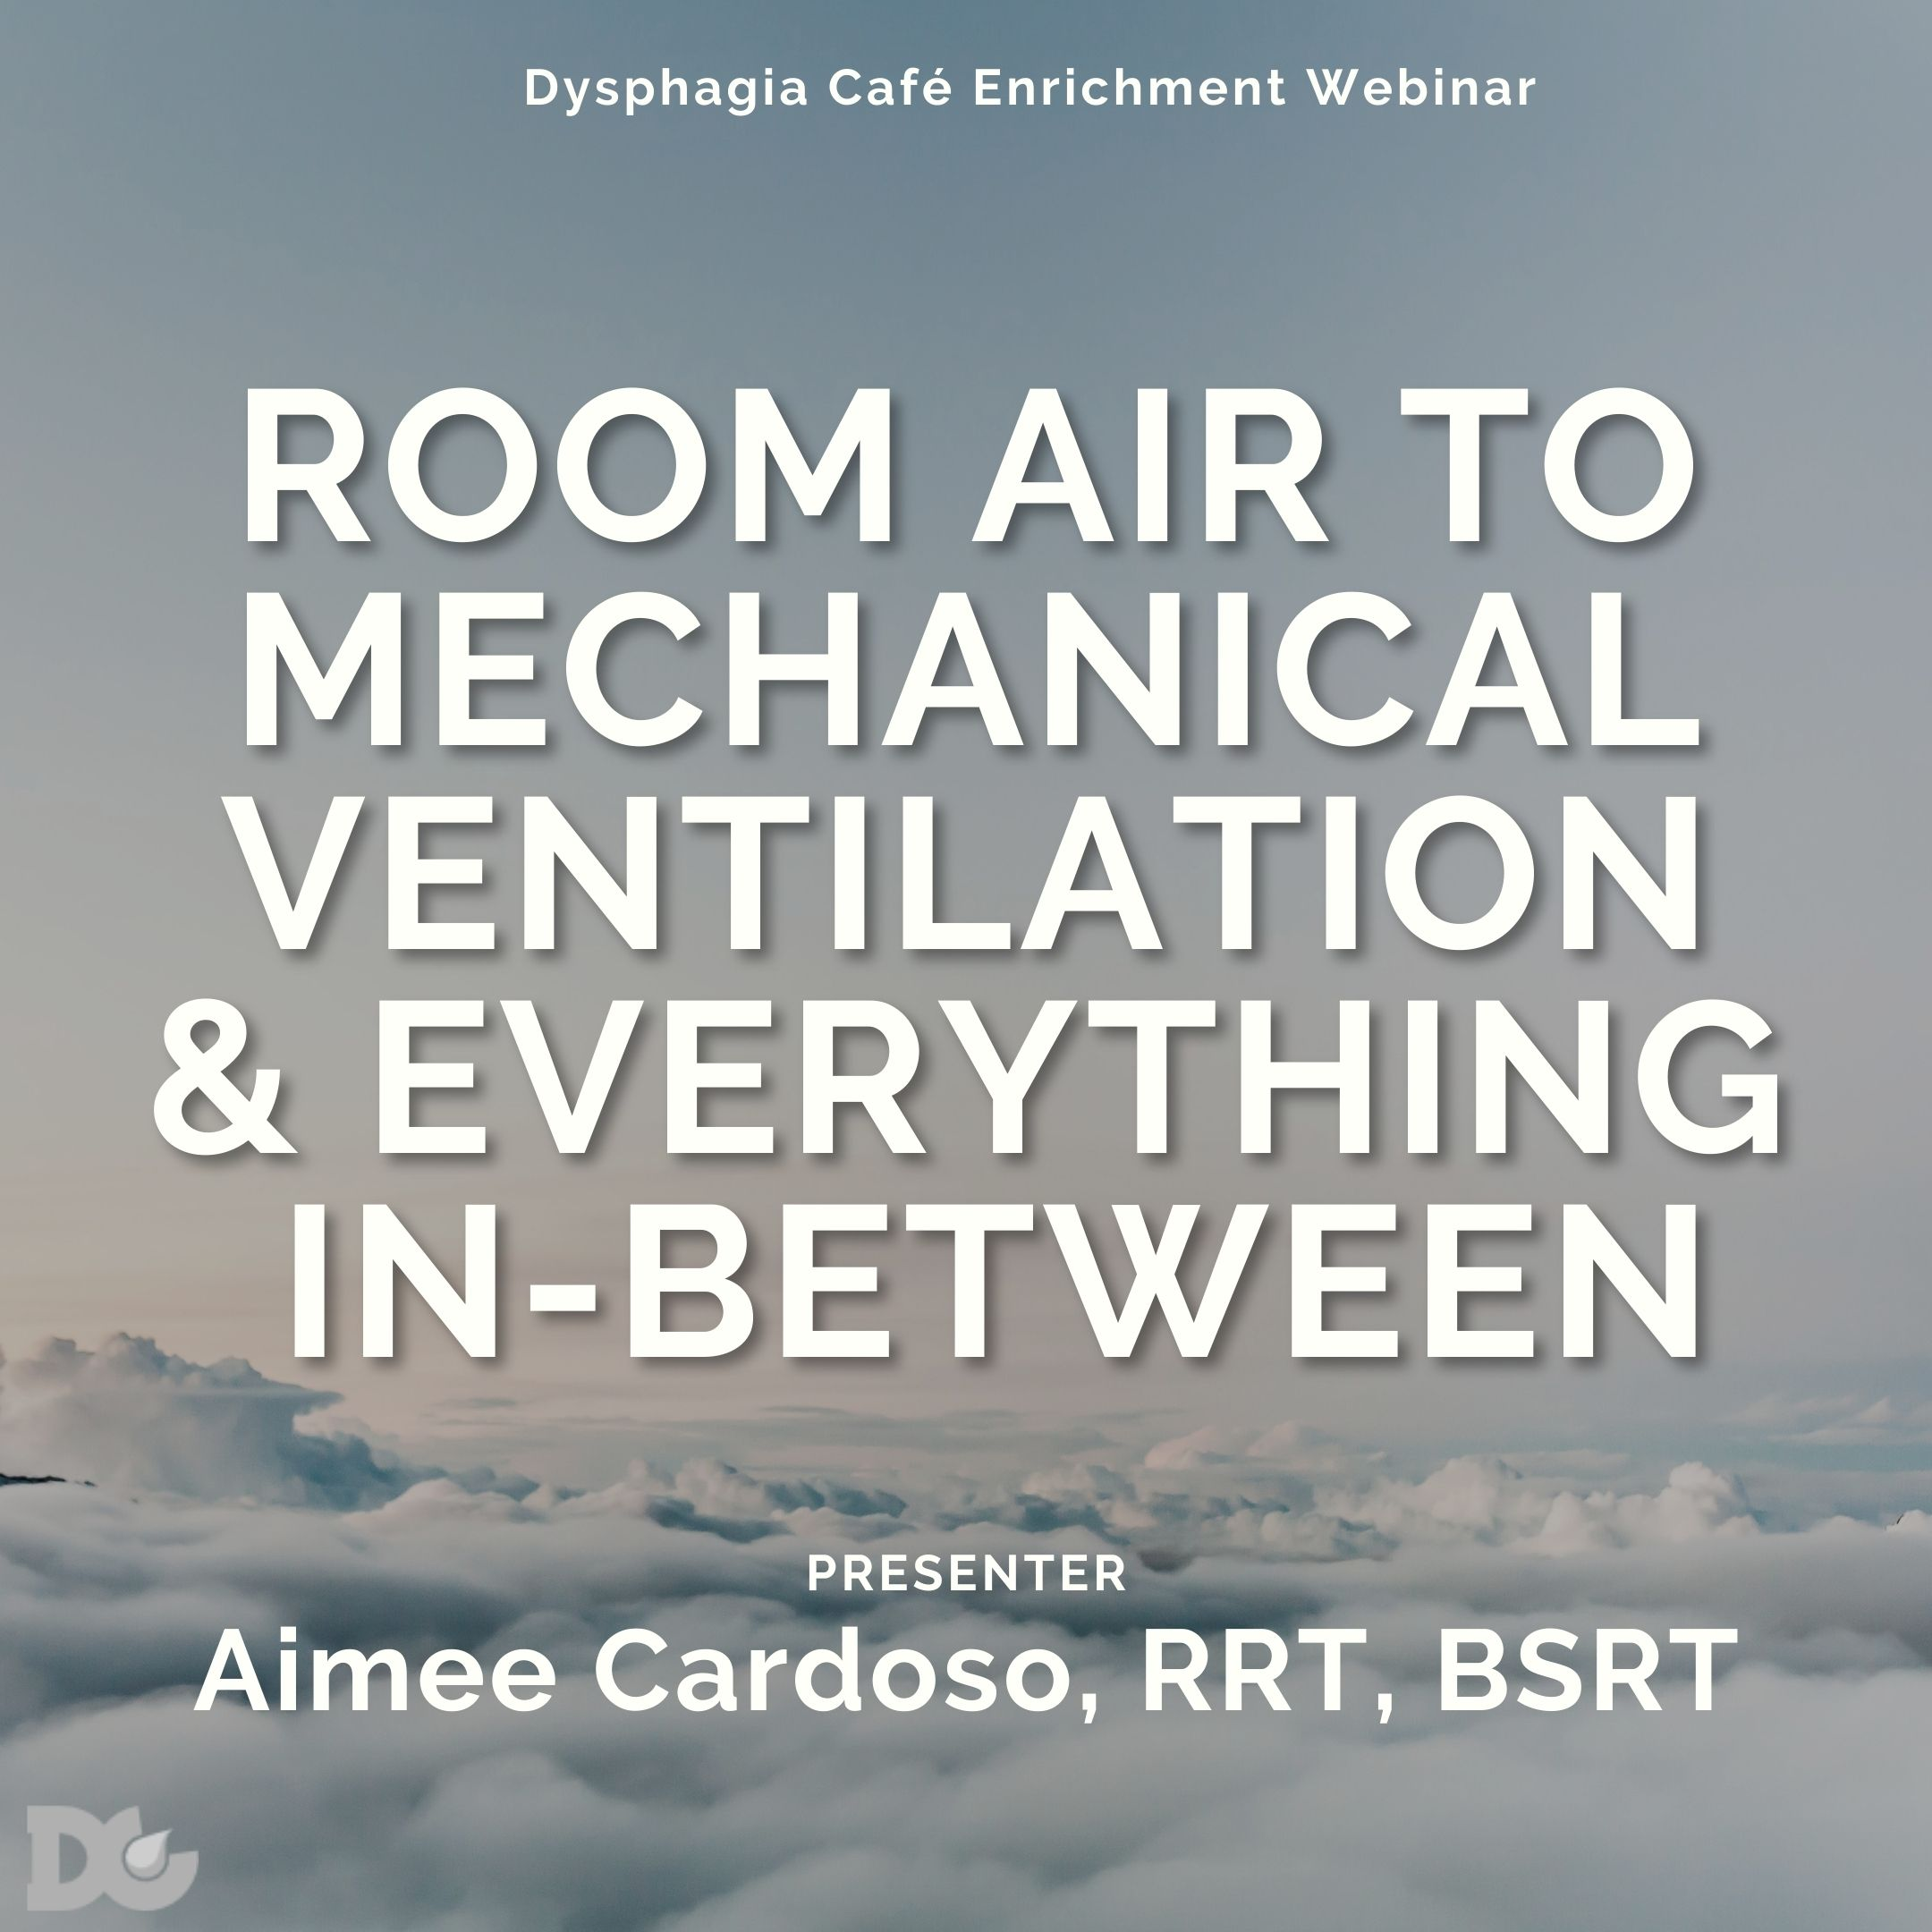 Room Air to Mechanical Ventilation and Everything In-between